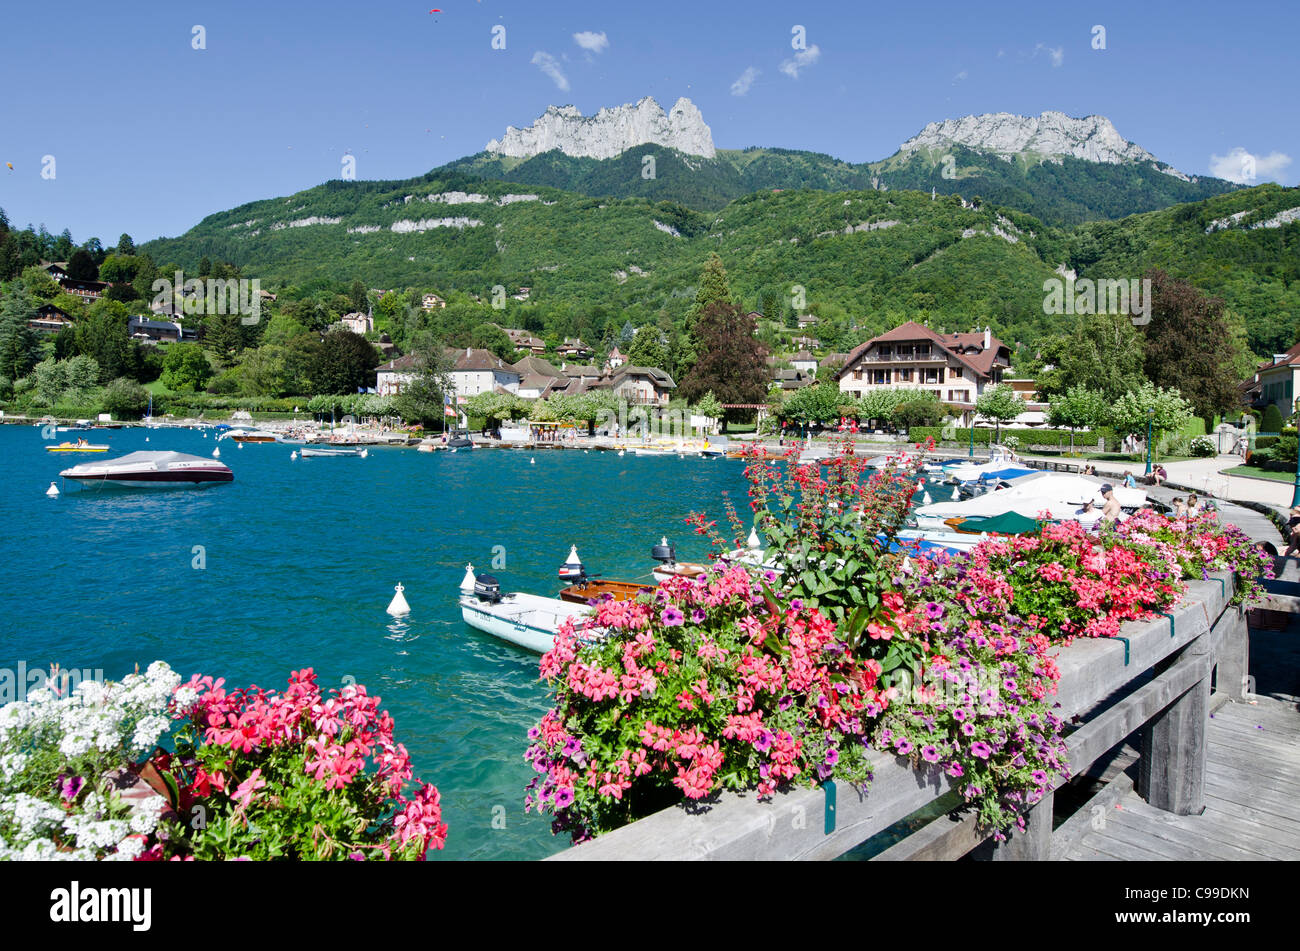 lake annecy stock photos lake annecy stock images alamy. Black Bedroom Furniture Sets. Home Design Ideas